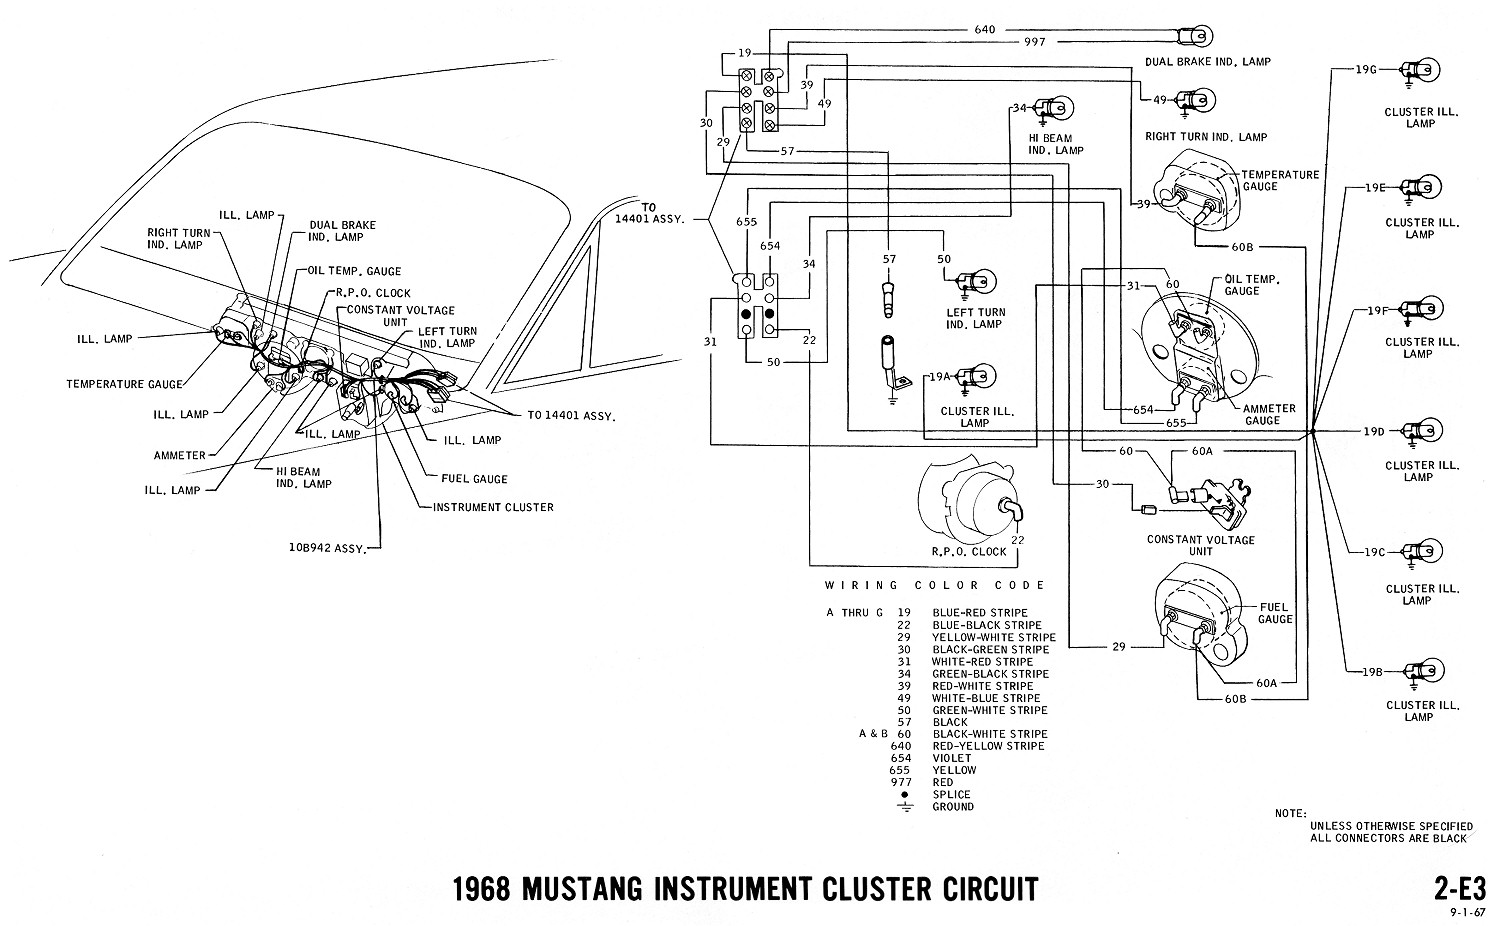 1968 mustang wiring diagram instruments wiring diagram for 1968 ford mustang the wiring diagram 2005 ford mustang instrument cluster wiring diagram at virtualis.co